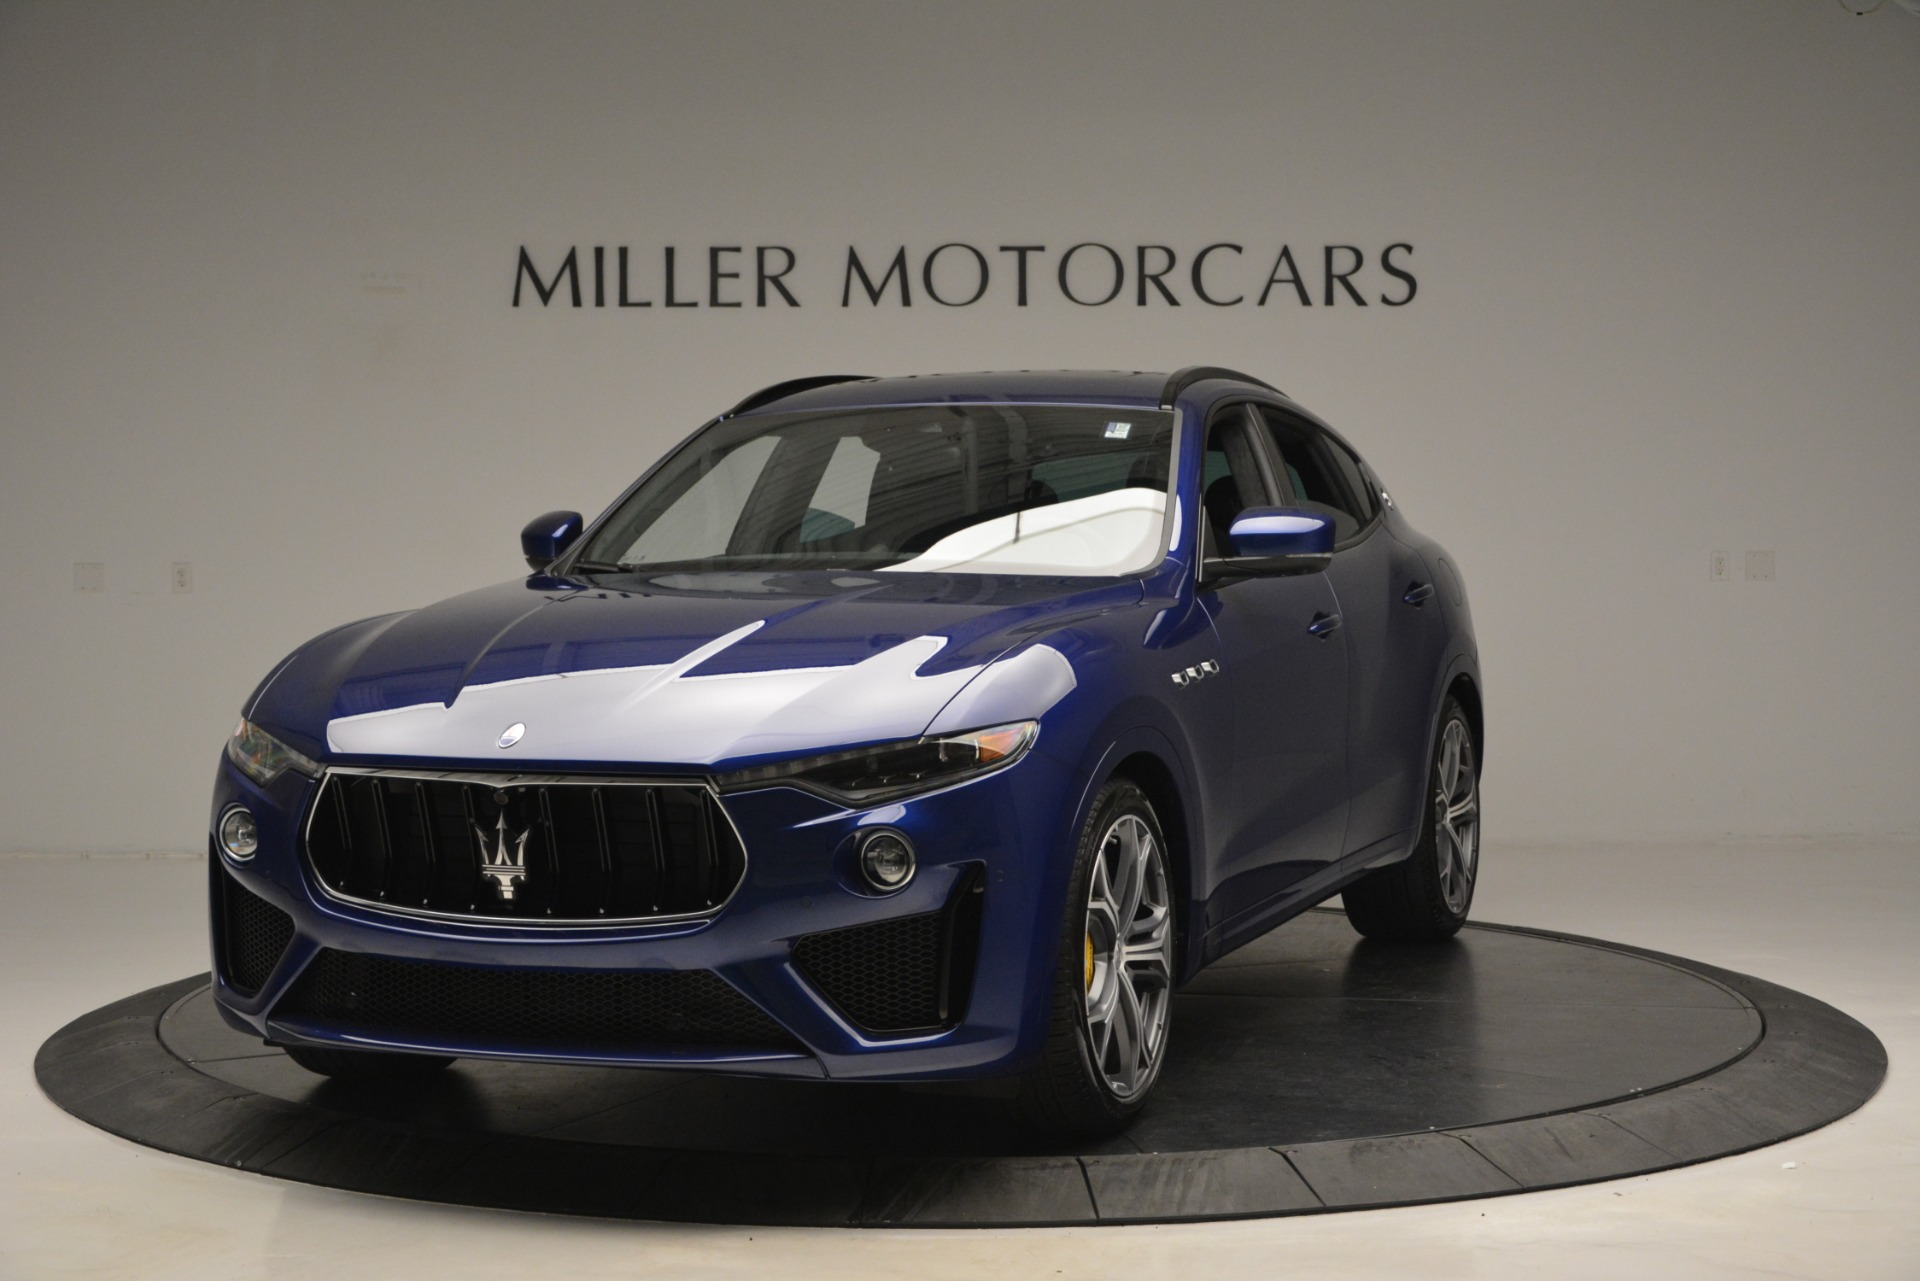 New 2019 Maserati Levante GTS For Sale In Westport, CT 2885_main